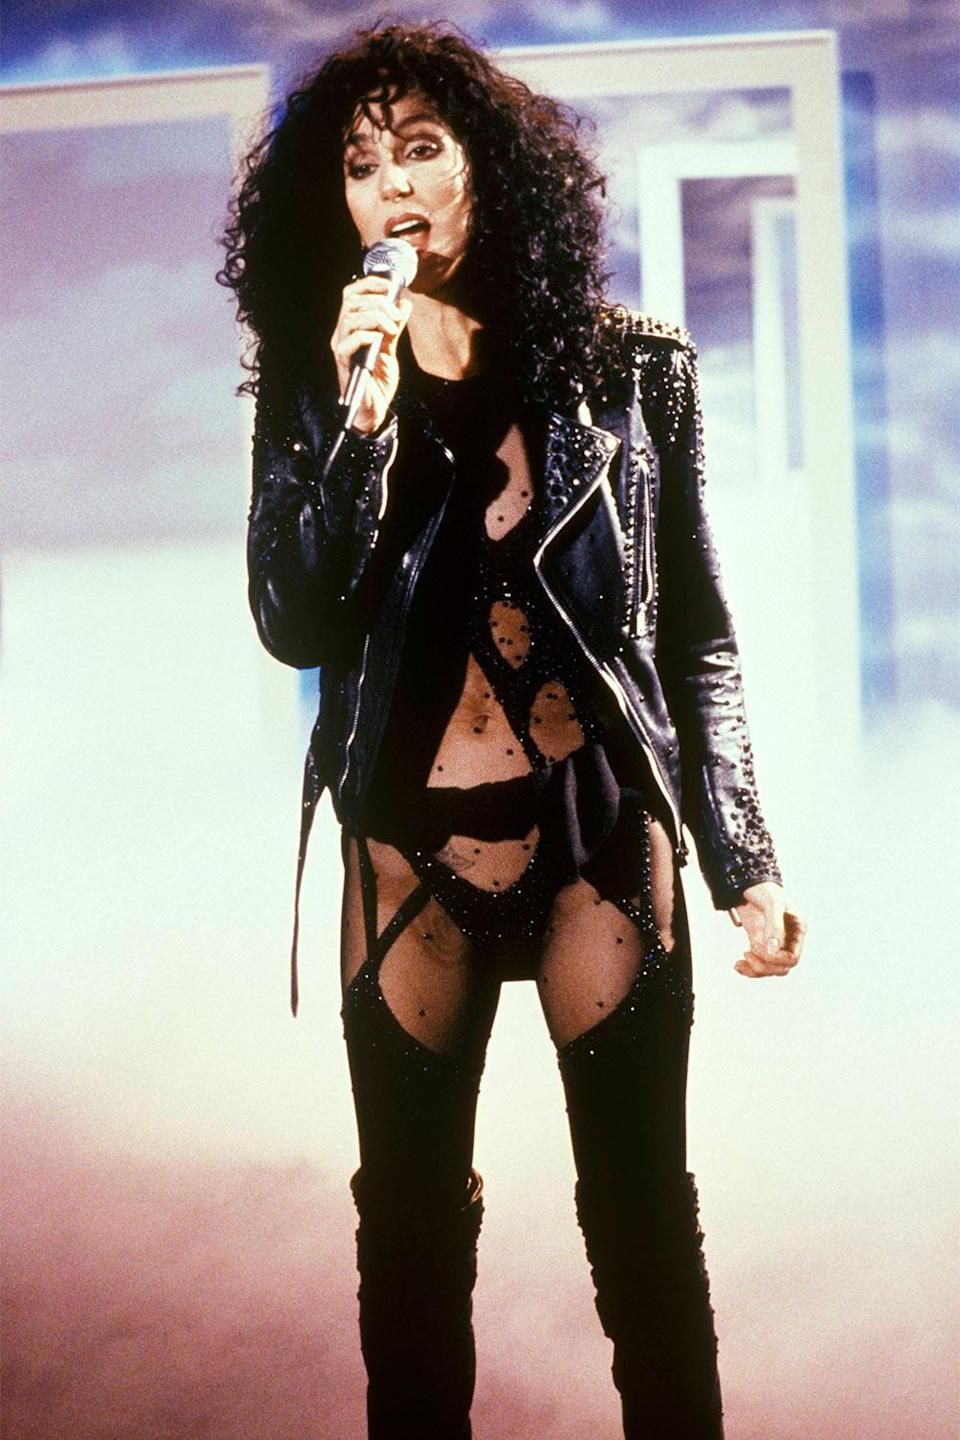 <p>In 1987, Cher performed in this barely there leotard and leather jacket and we have never been the same. </p>